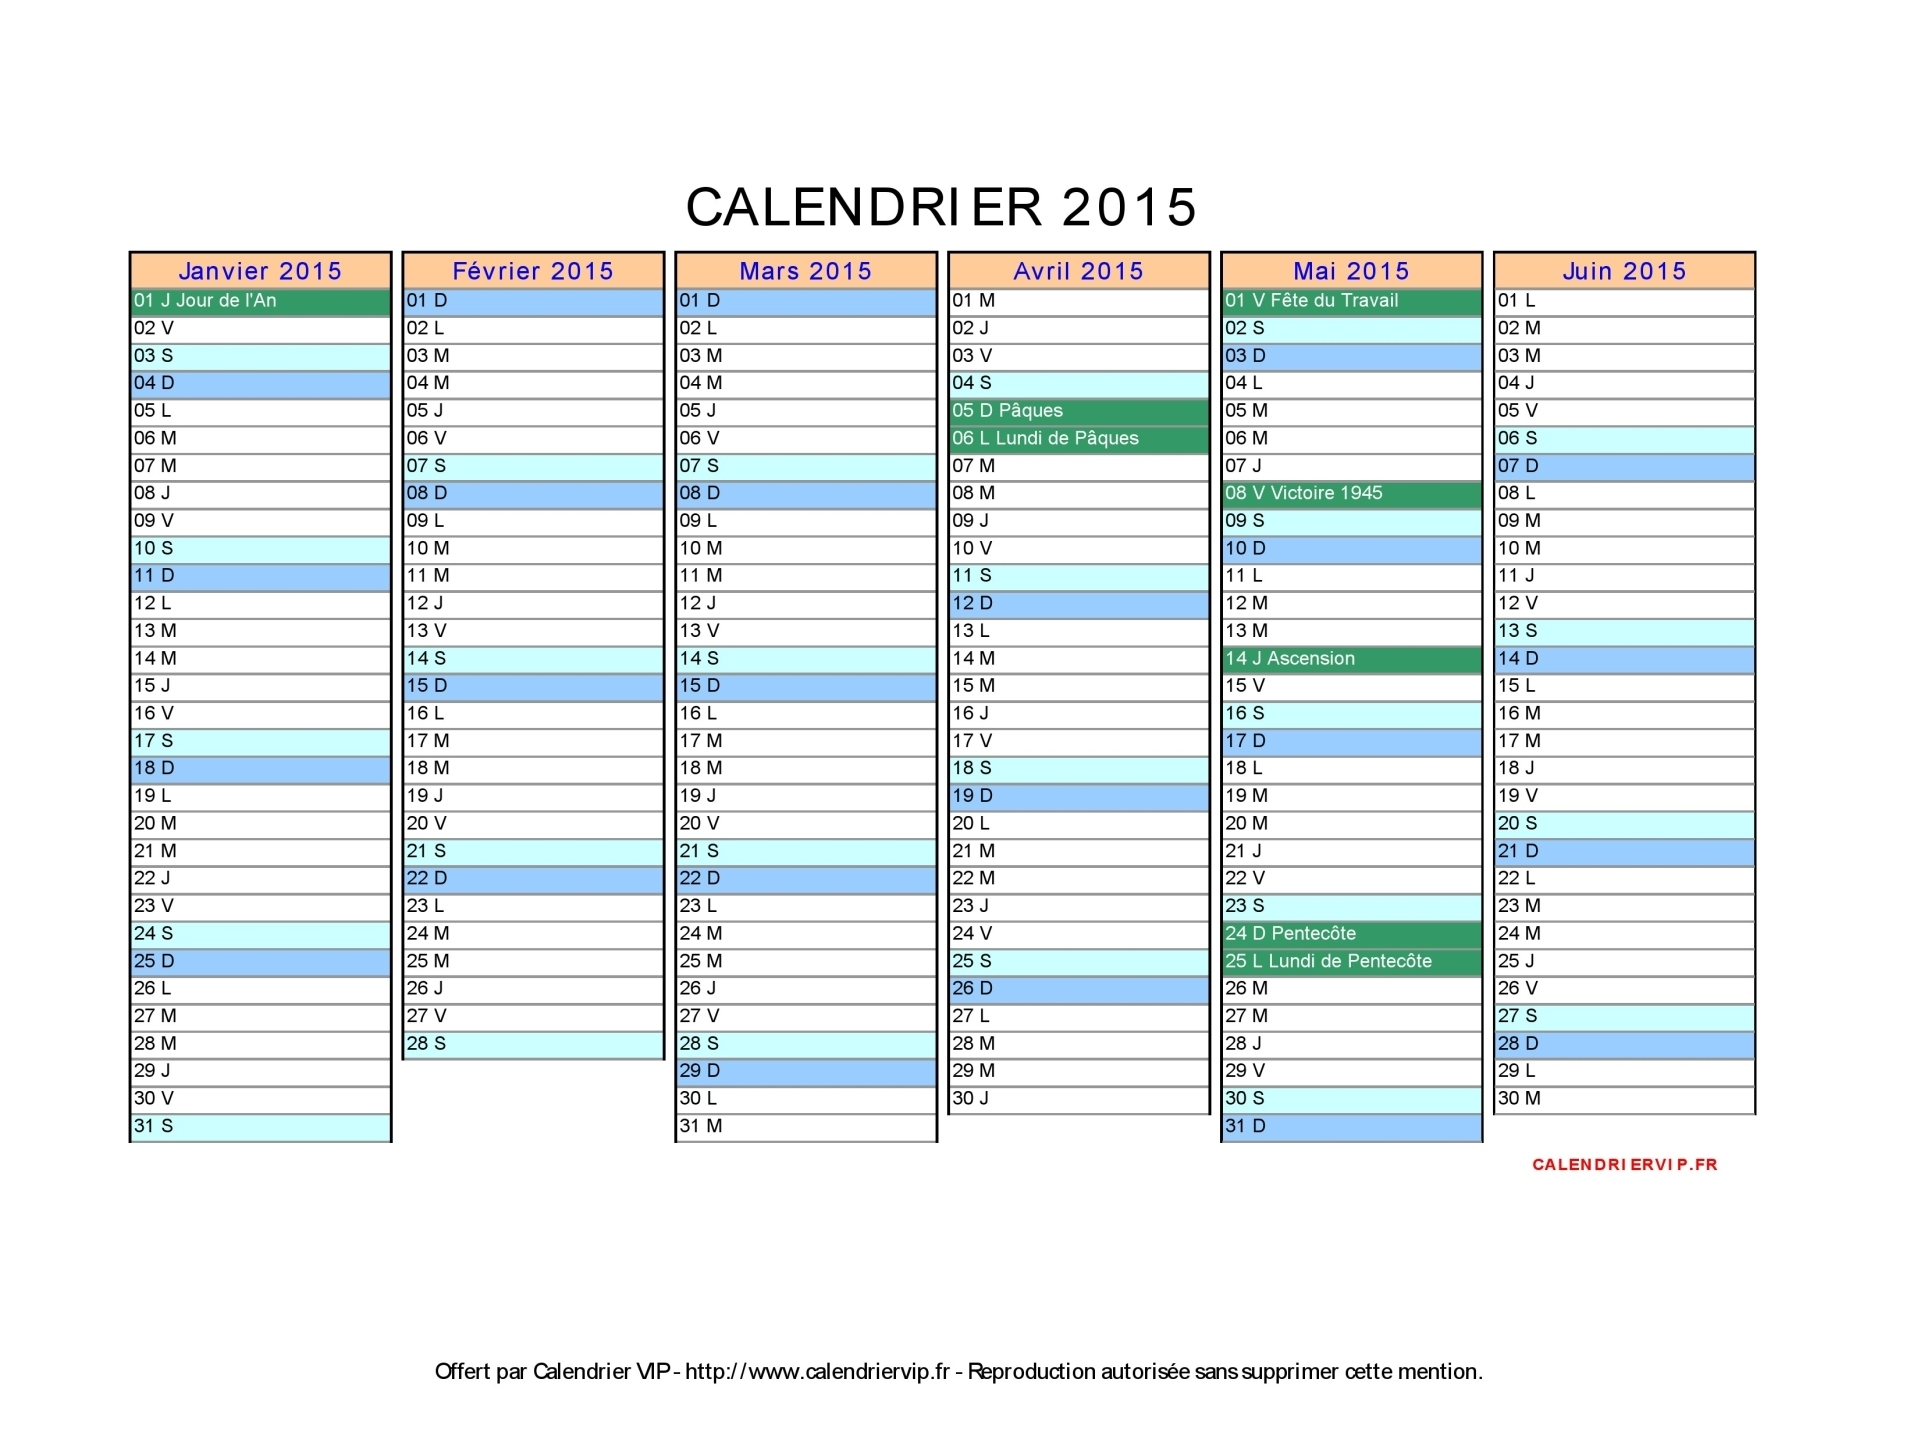 Calendrier vierge 2016 excel